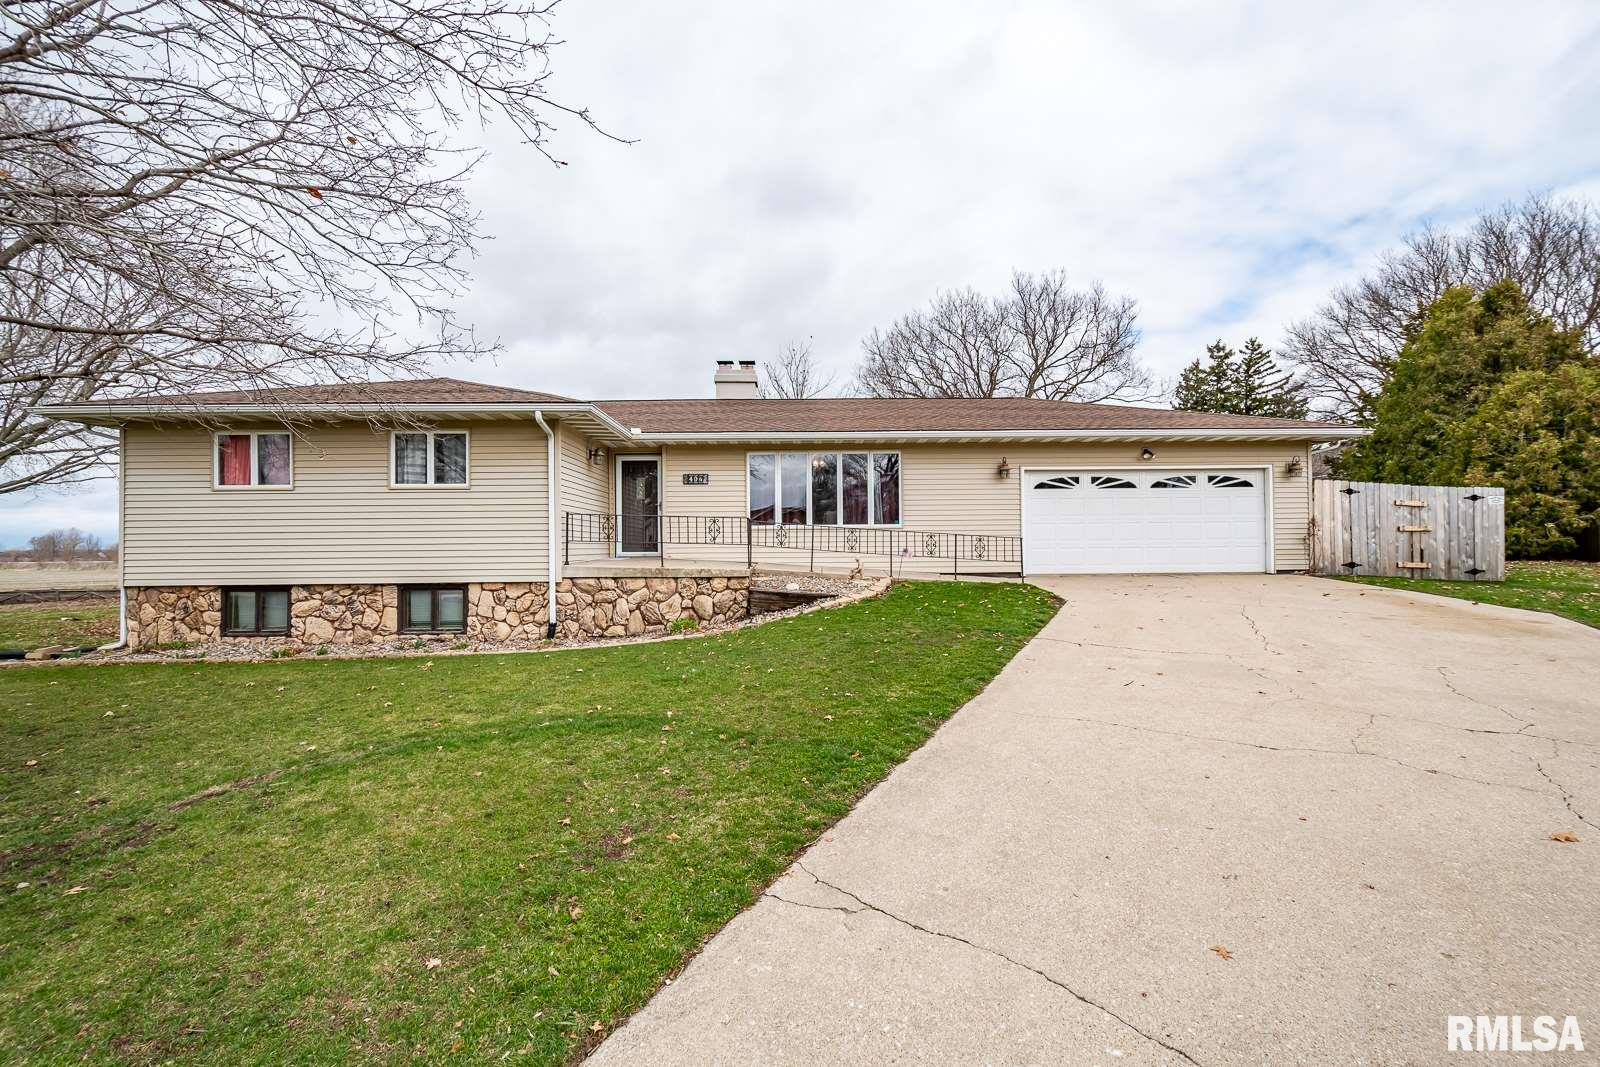 406 WESTVIEW Property Photo - Atkinson, IL real estate listing